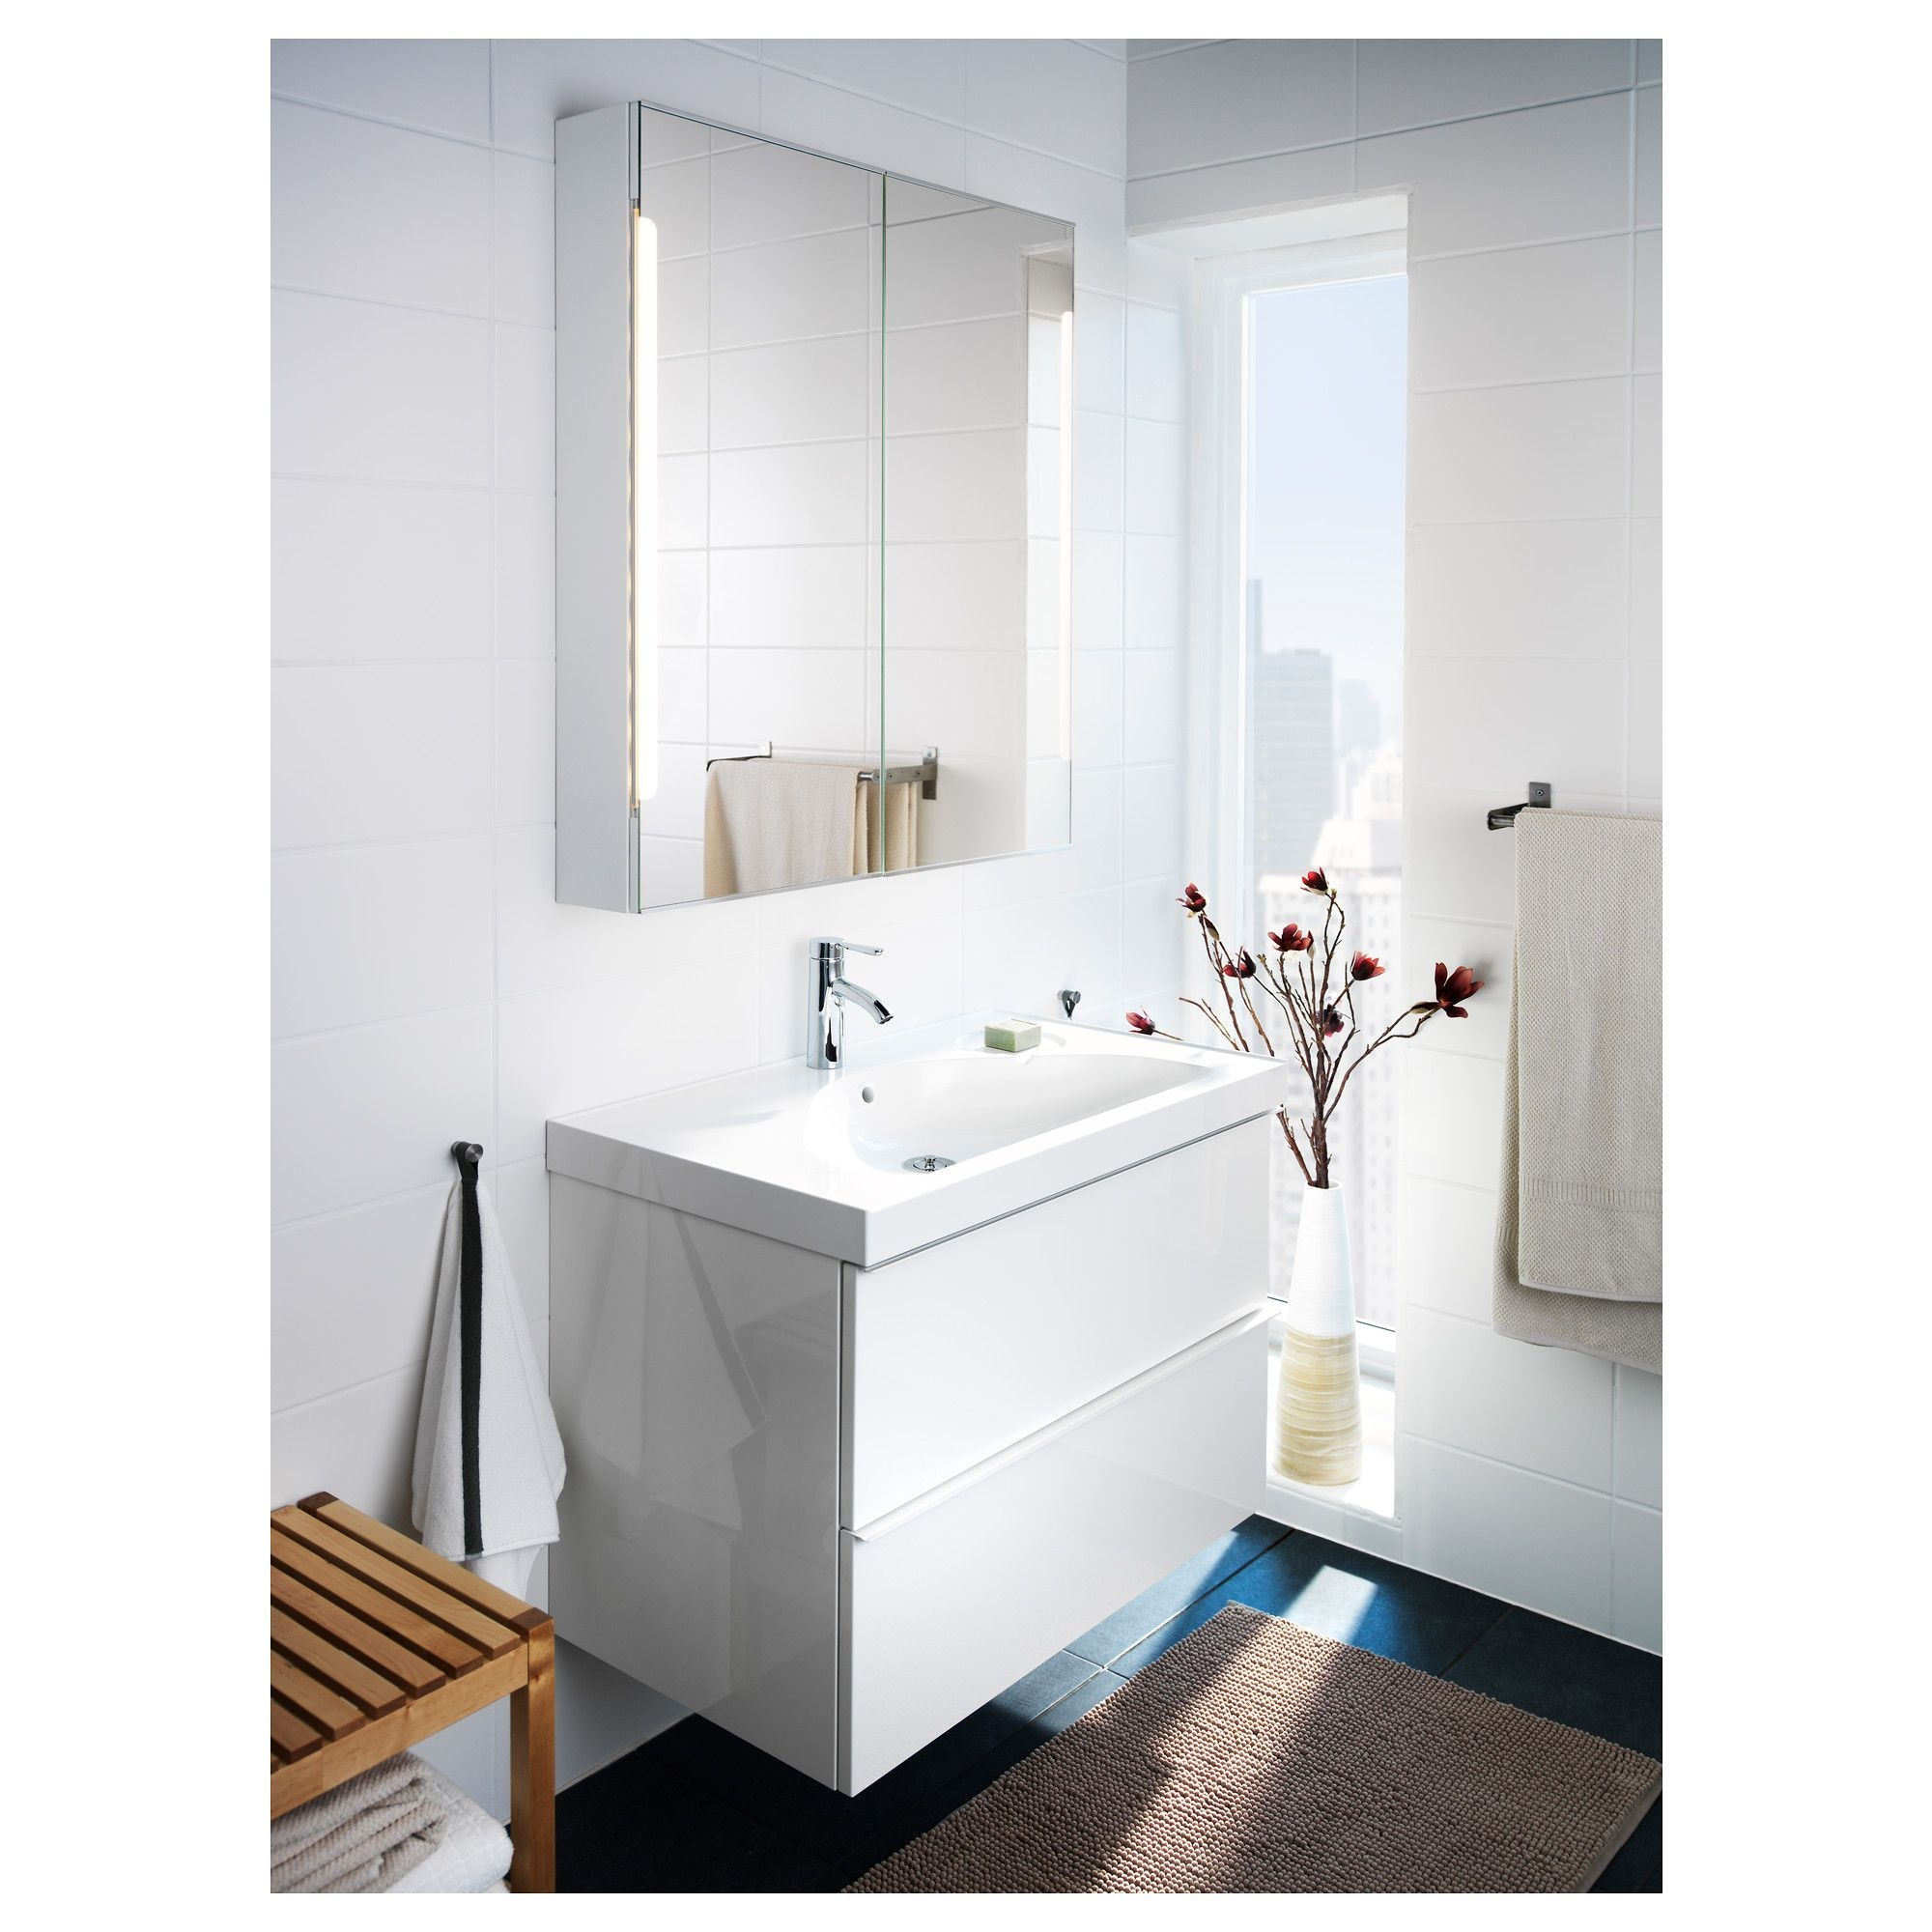 Ikea  Storjorm Mirror Cabinet W2 Doors  Light White In 2019  Bathroom Mirror Cabinet